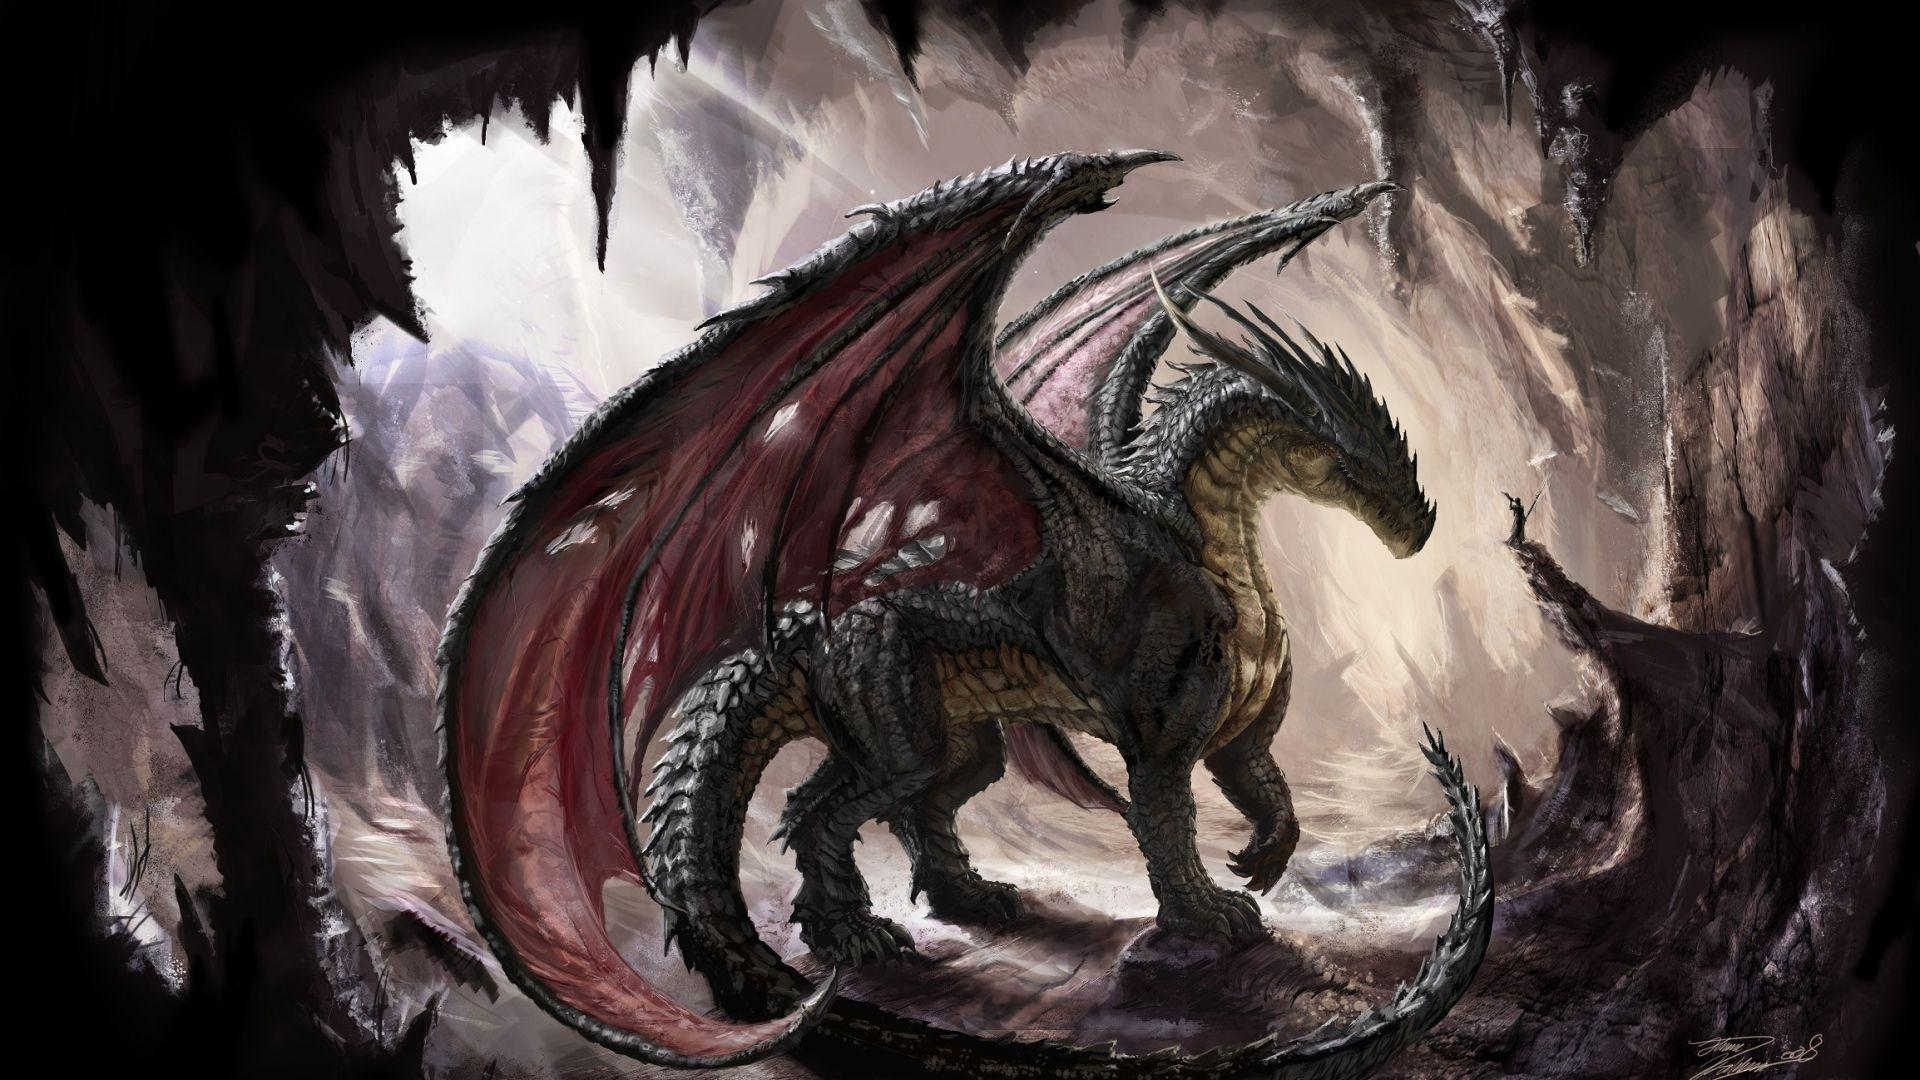 Download Wallpapers 1920x1080 dragon, cave, light, art Full HD 1080p